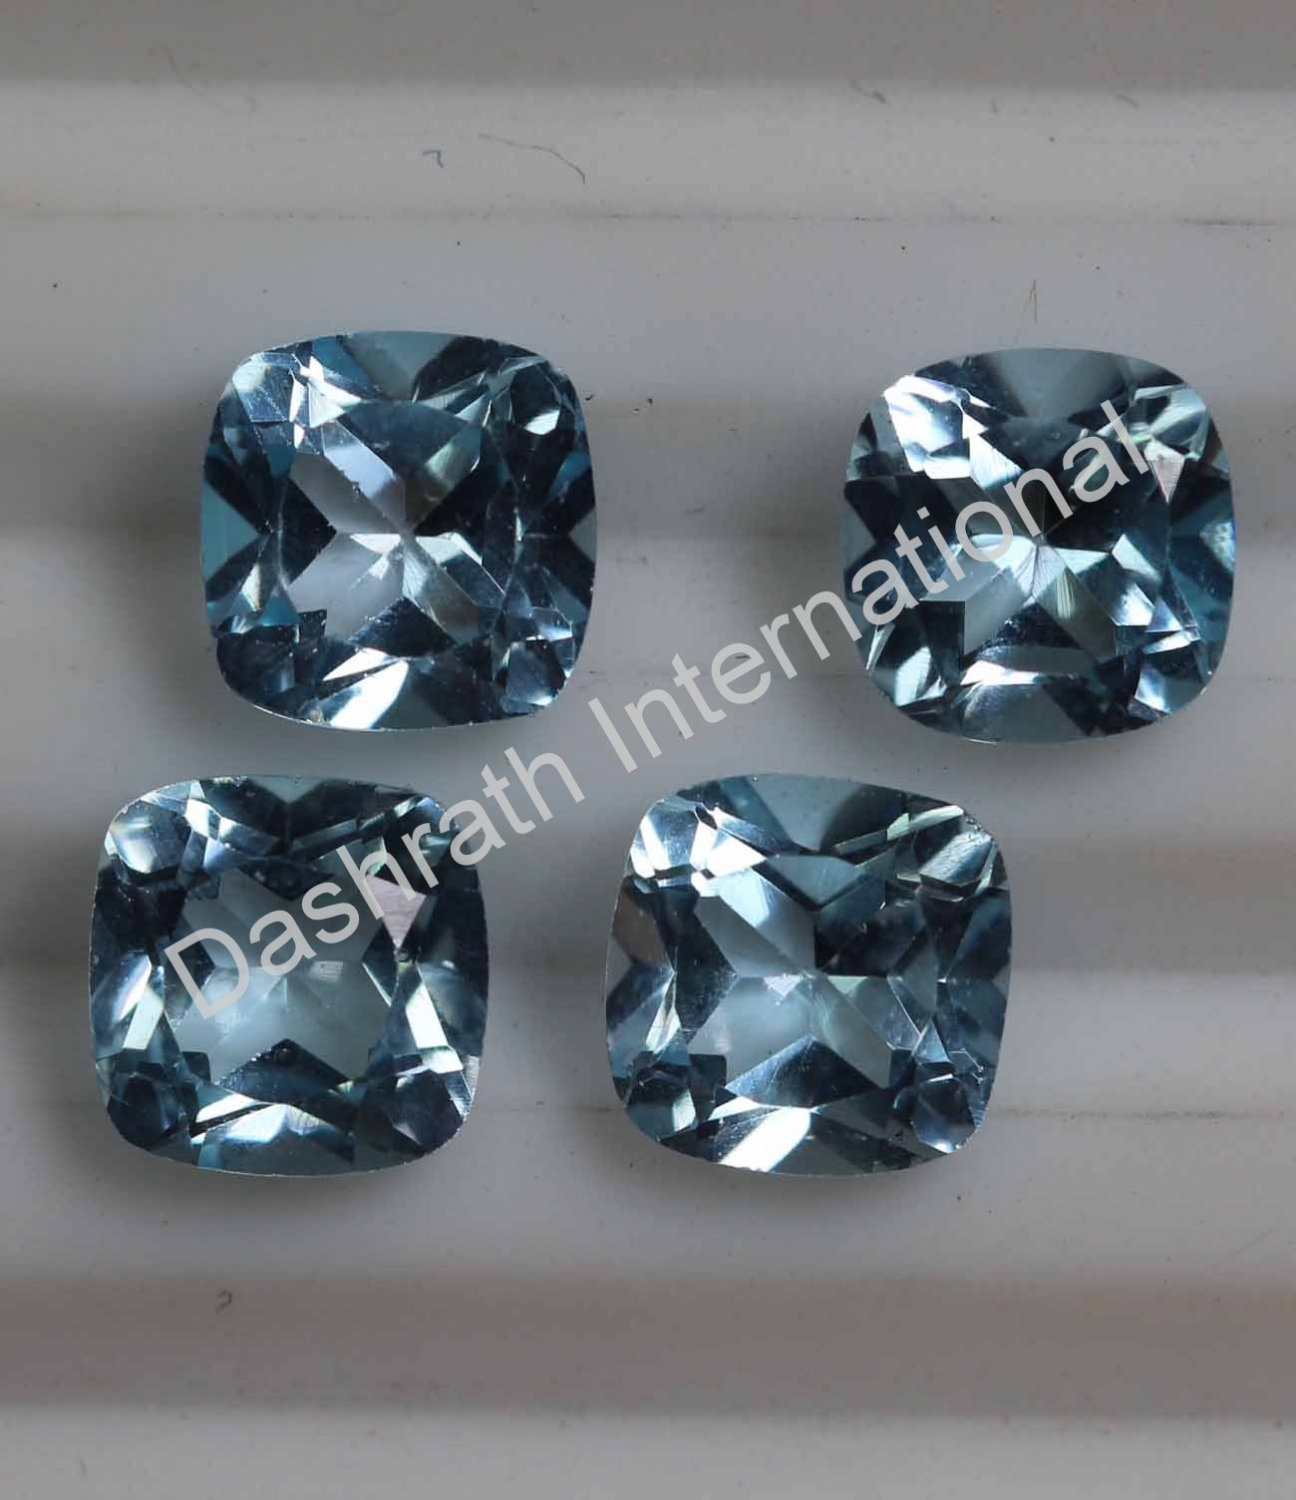 7mm Natural Sky Blue Topaz Faceted Cut Cushion 5 Pieces Lot Top Quality Loose Gemstone